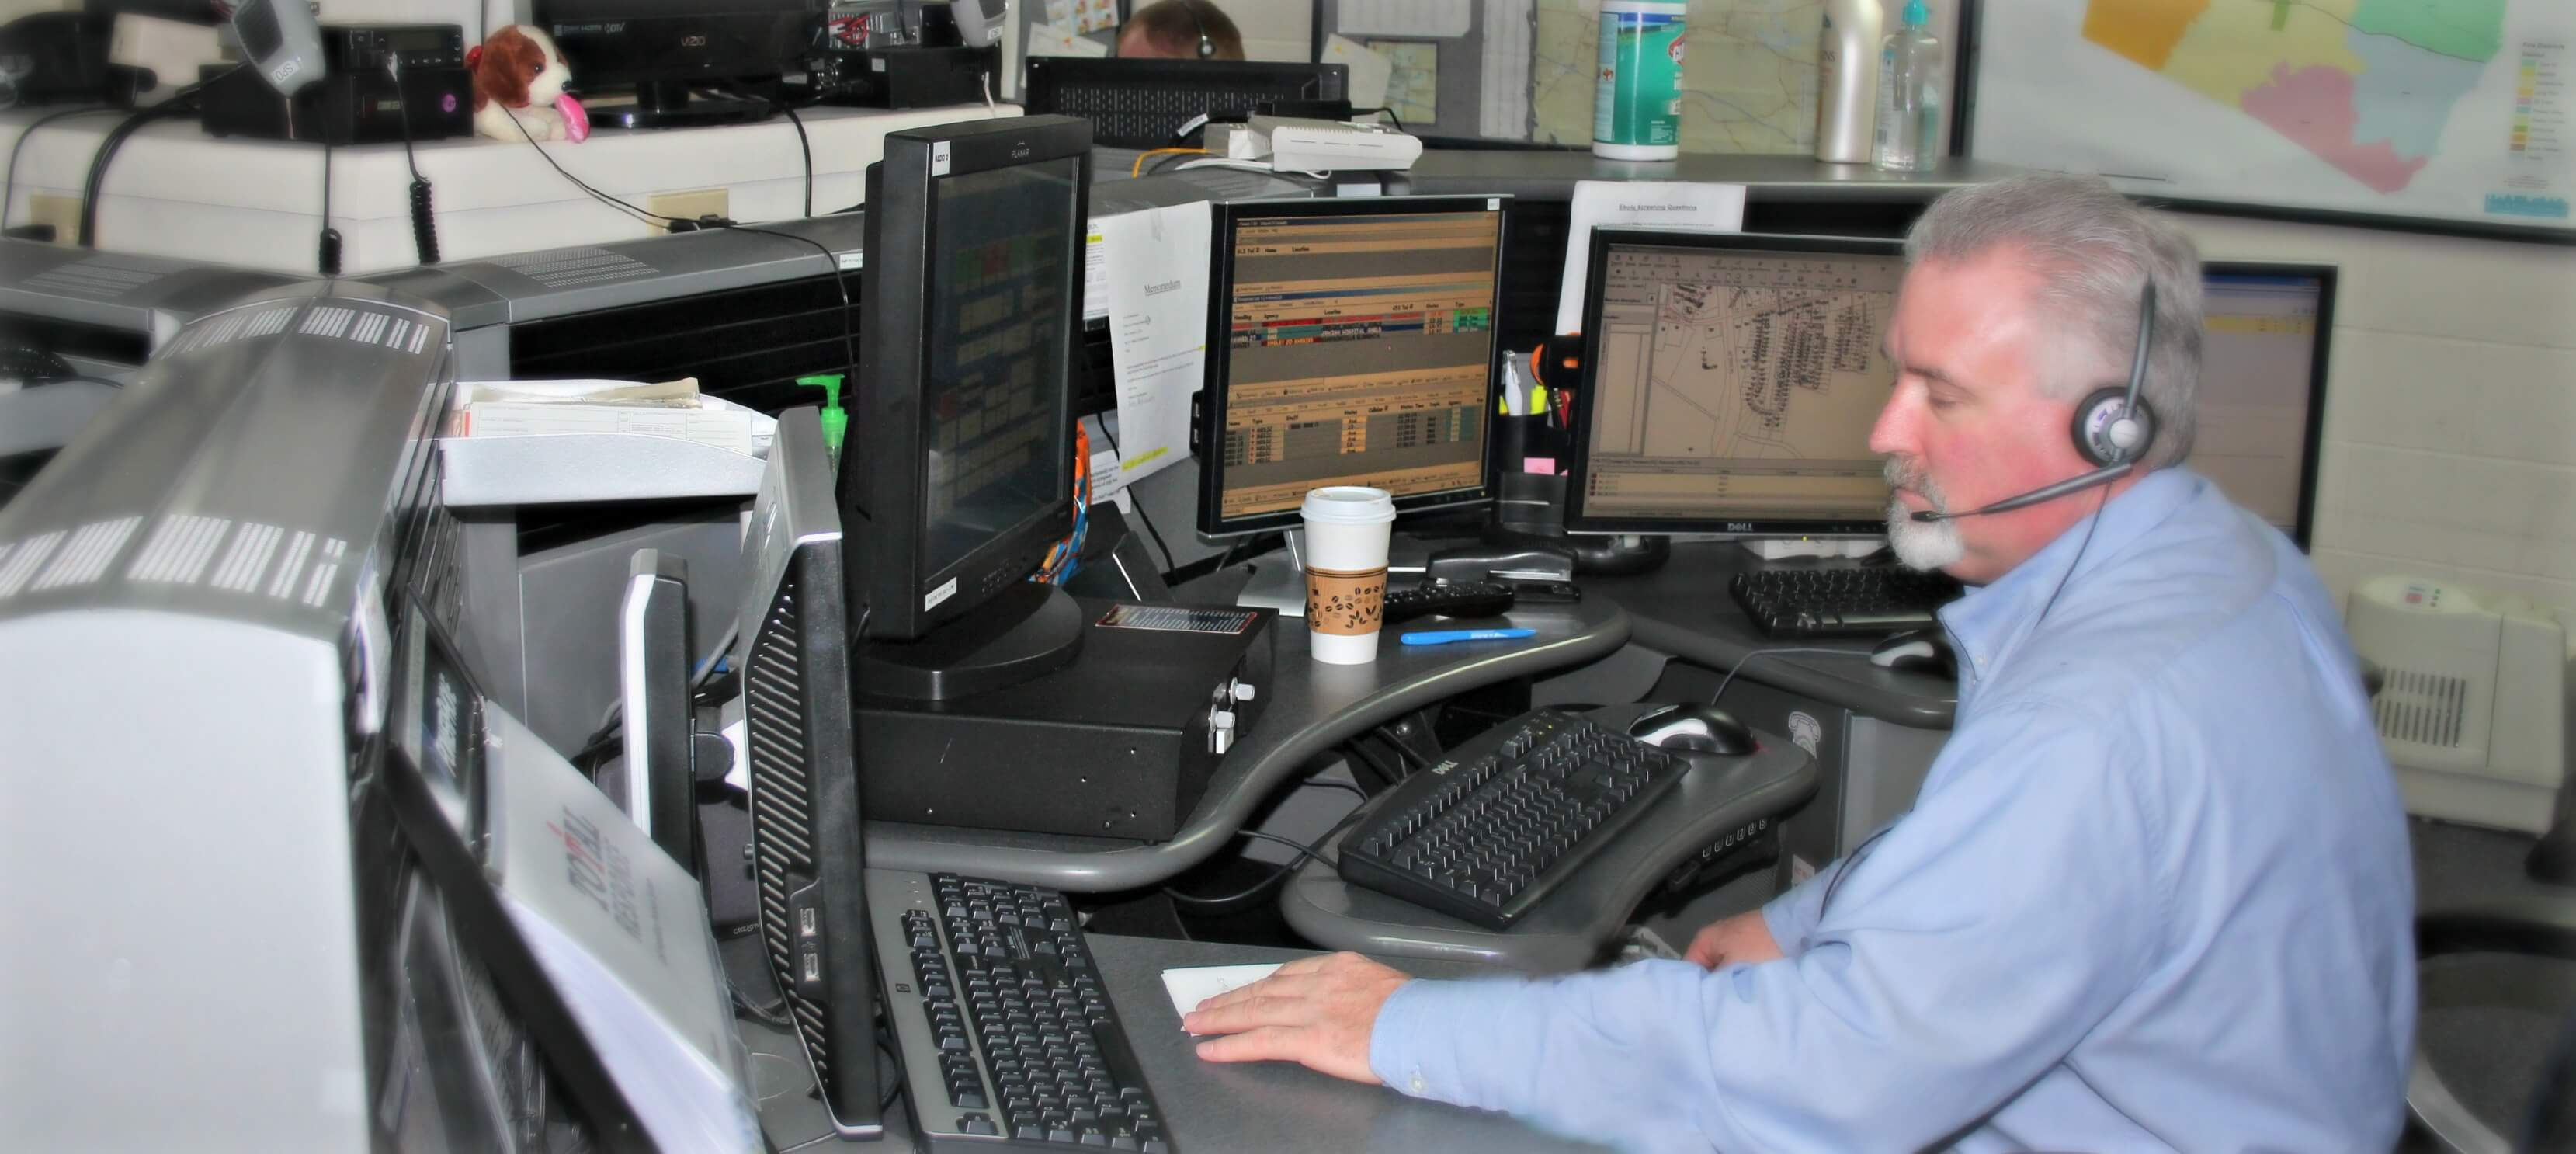 911 dispatch office